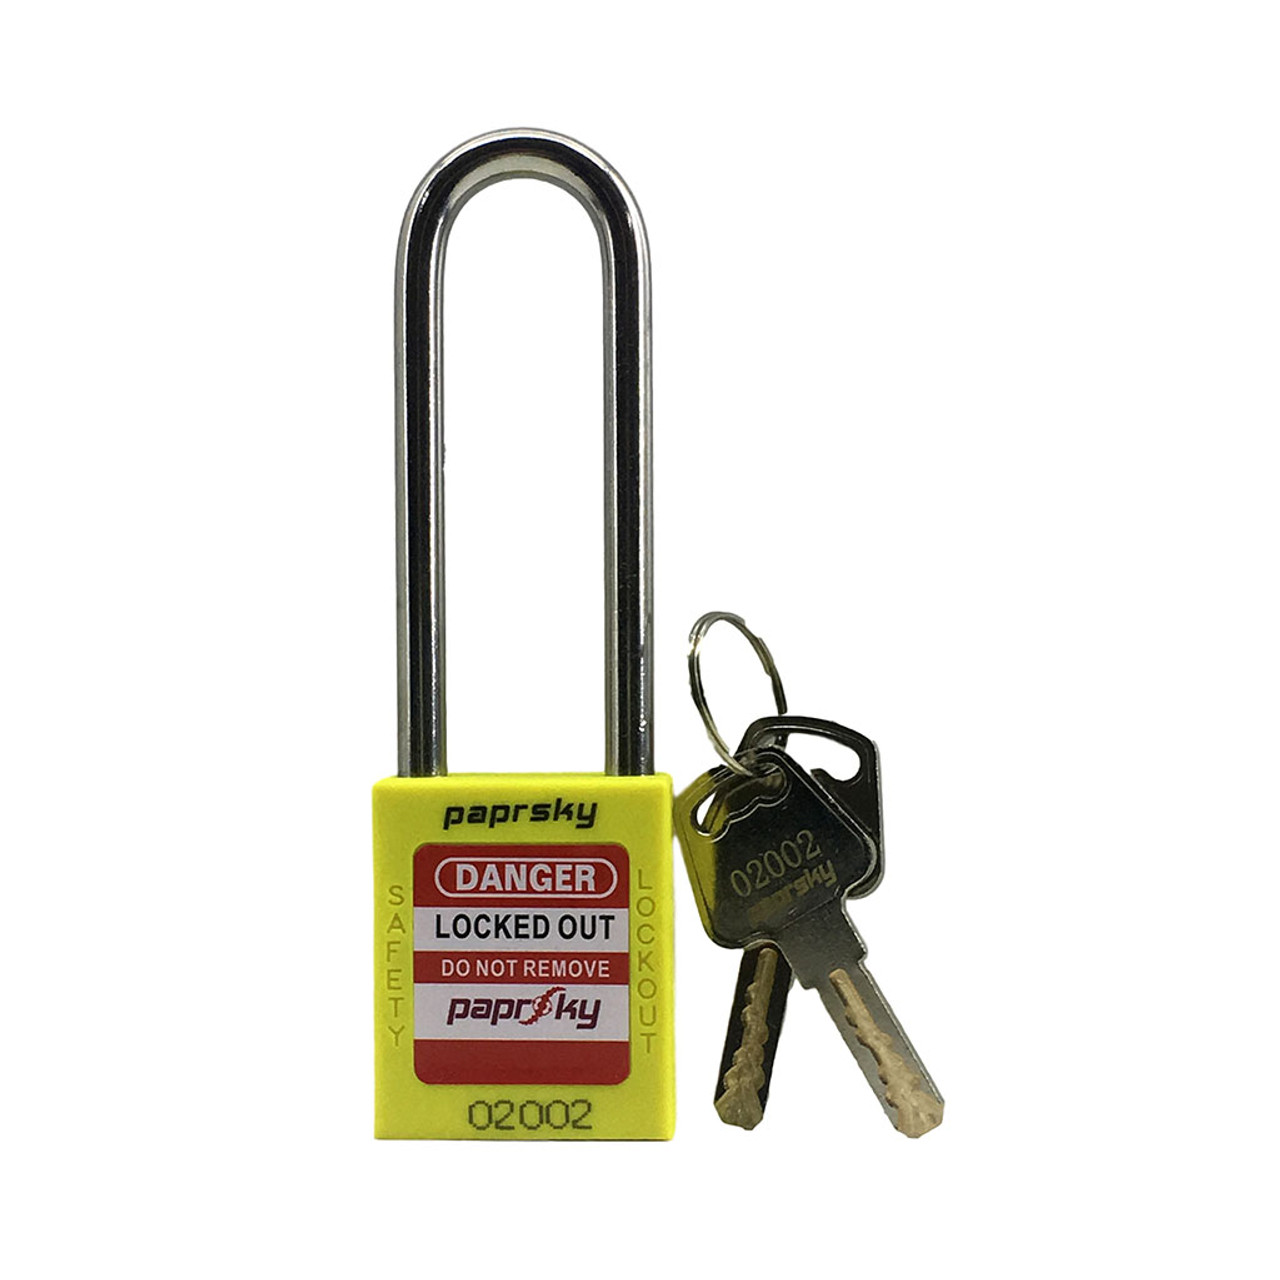 Lockout Padlock Yellow locks PS-LOTO-PPR-76 long shackle steel